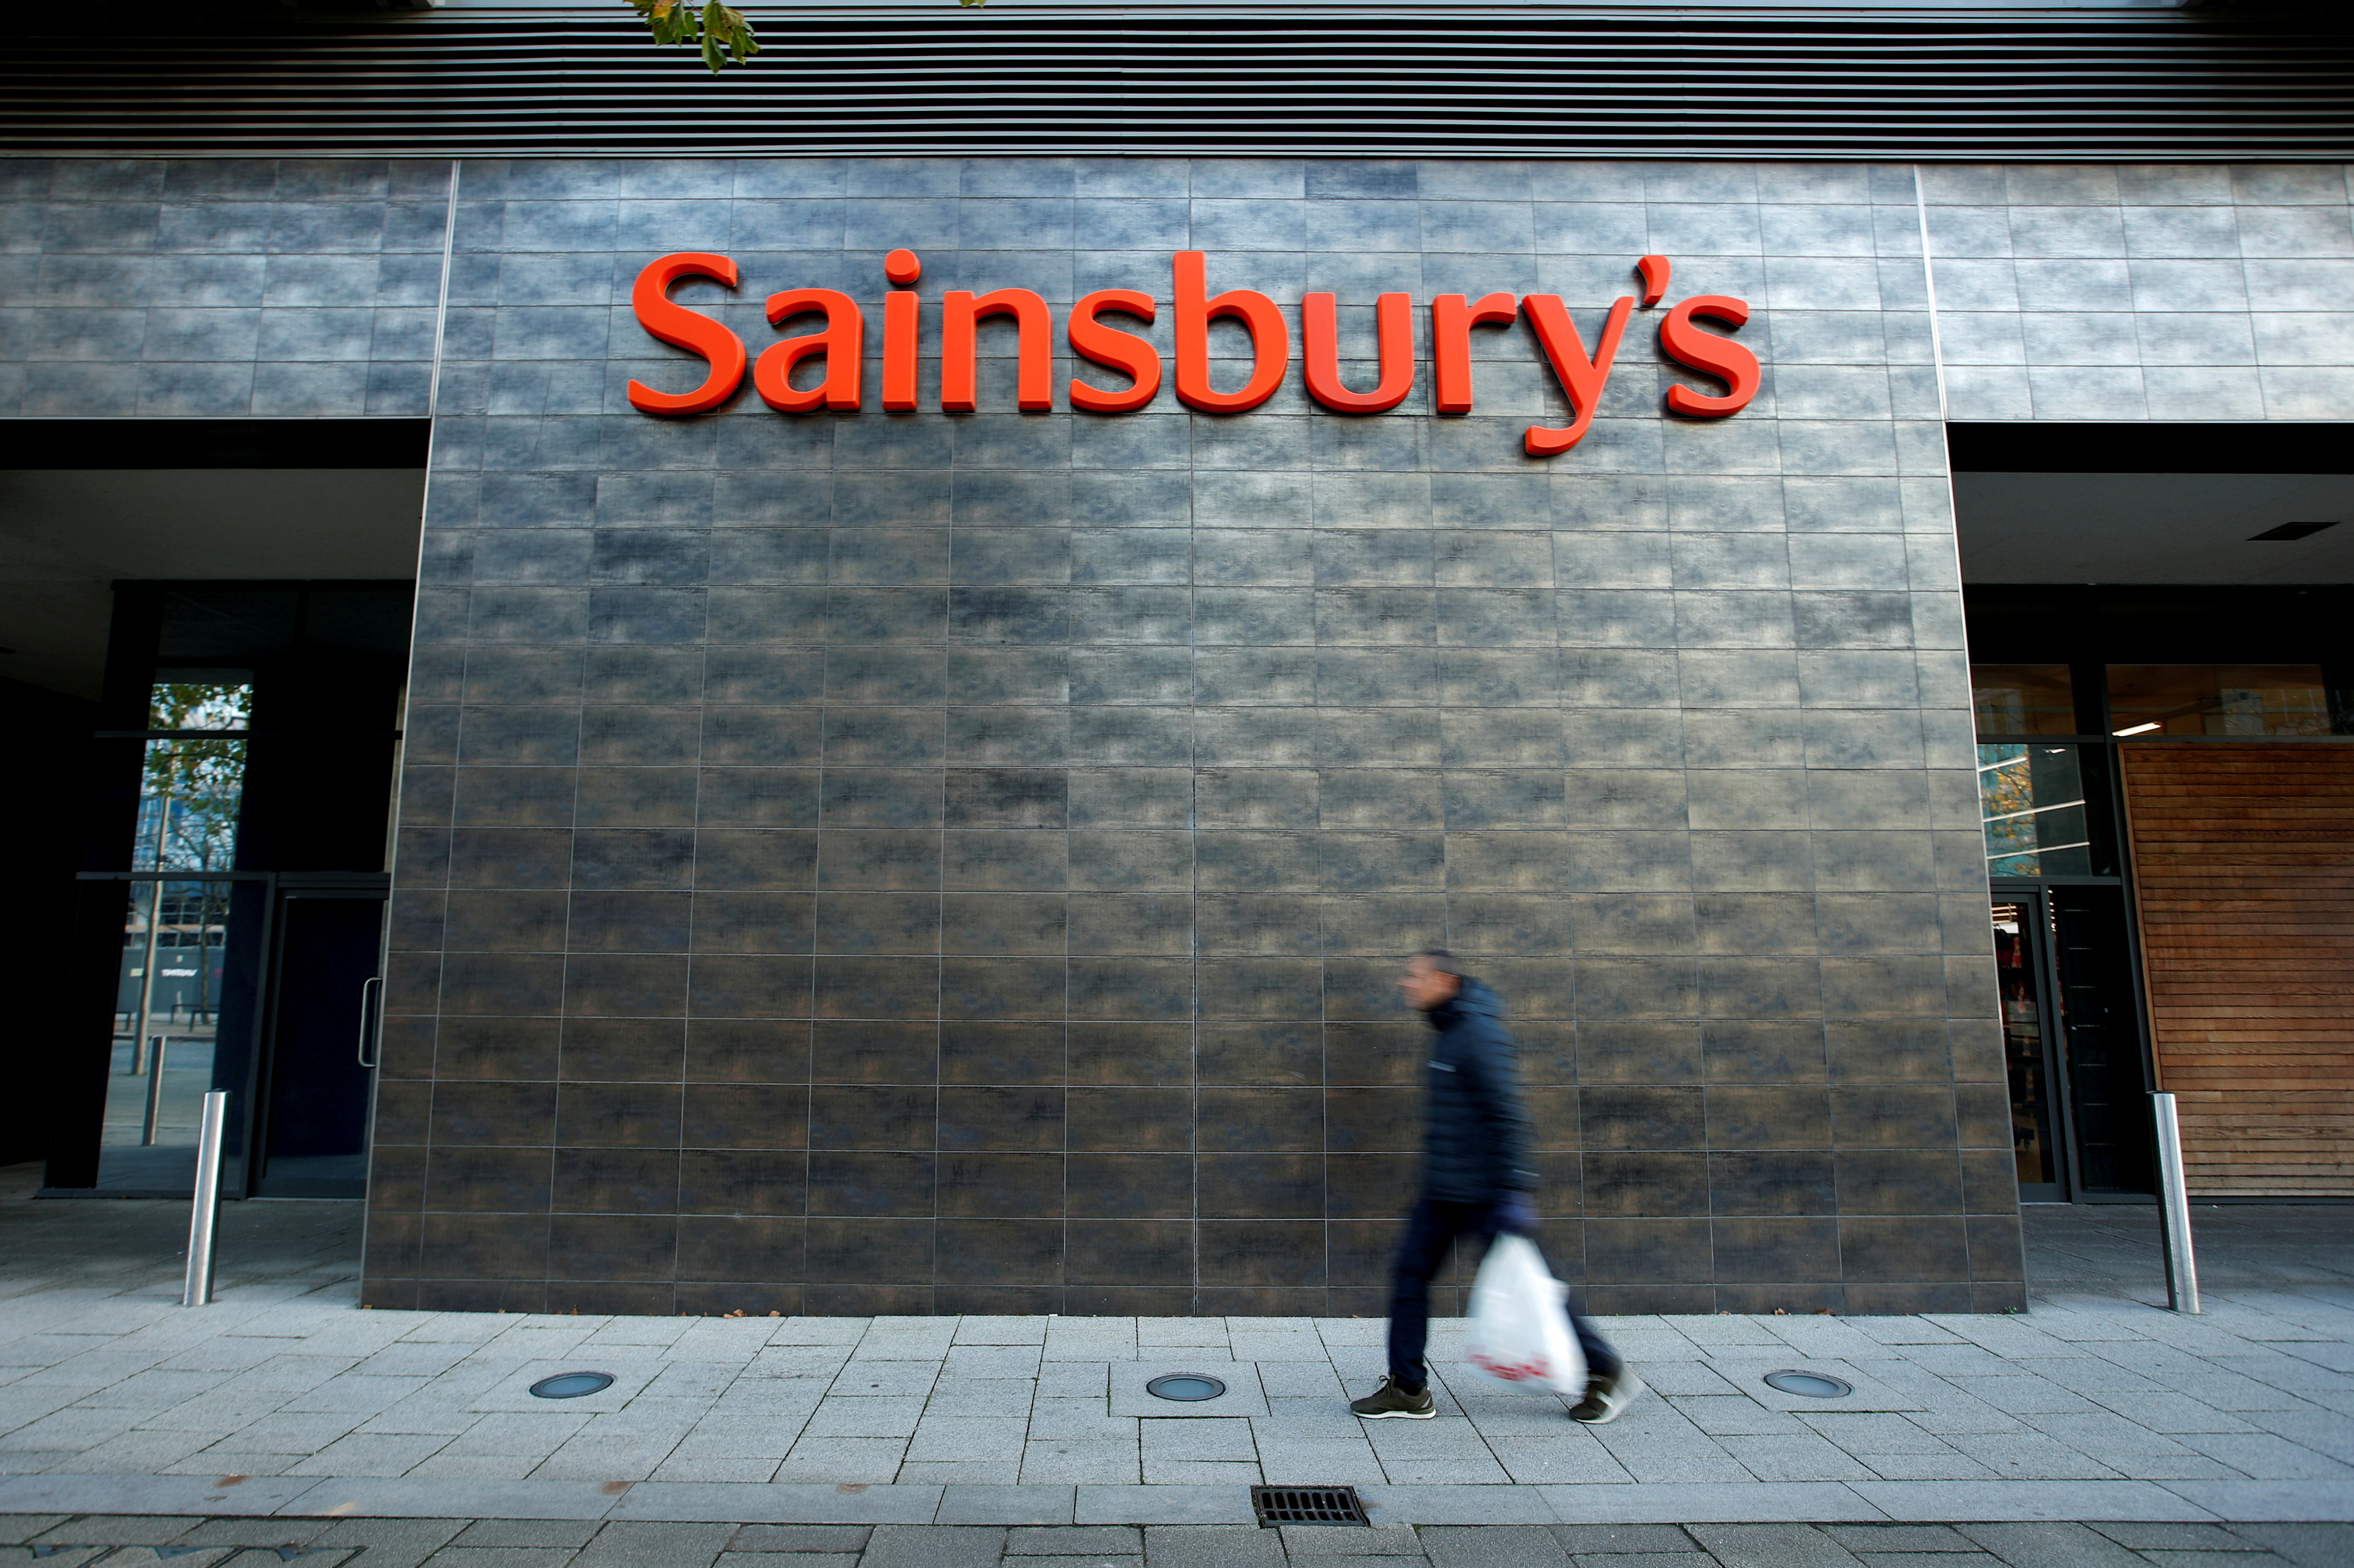 A person walks past a Sainsbury's store in Milton Keynes, Britain November 5, 2020. REUTERS/Andrew Boyers/File Photo